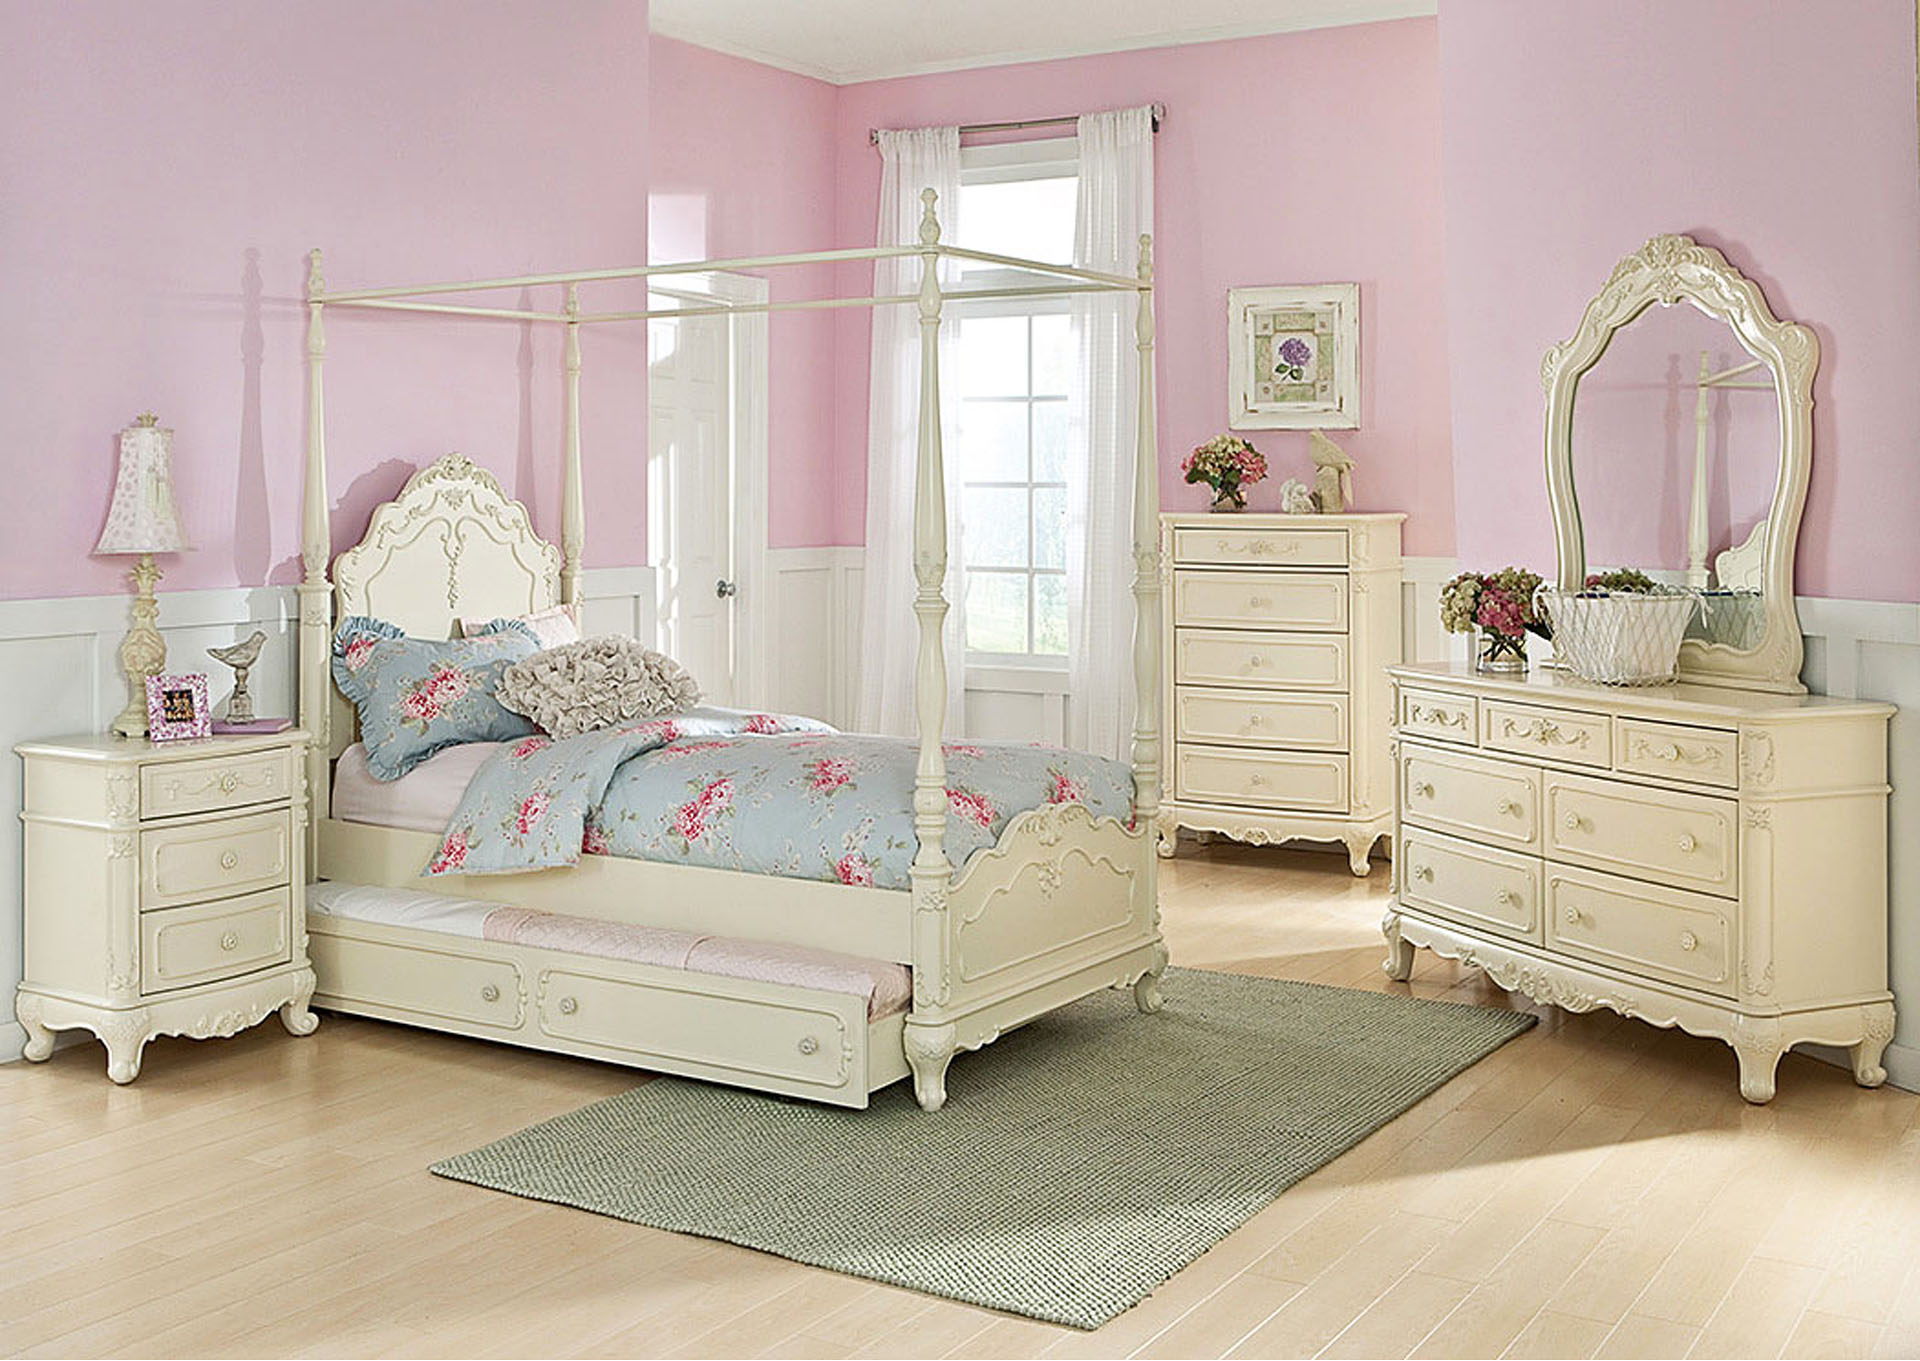 Cinderella White Full Canopy Poster Bed,Homelegance